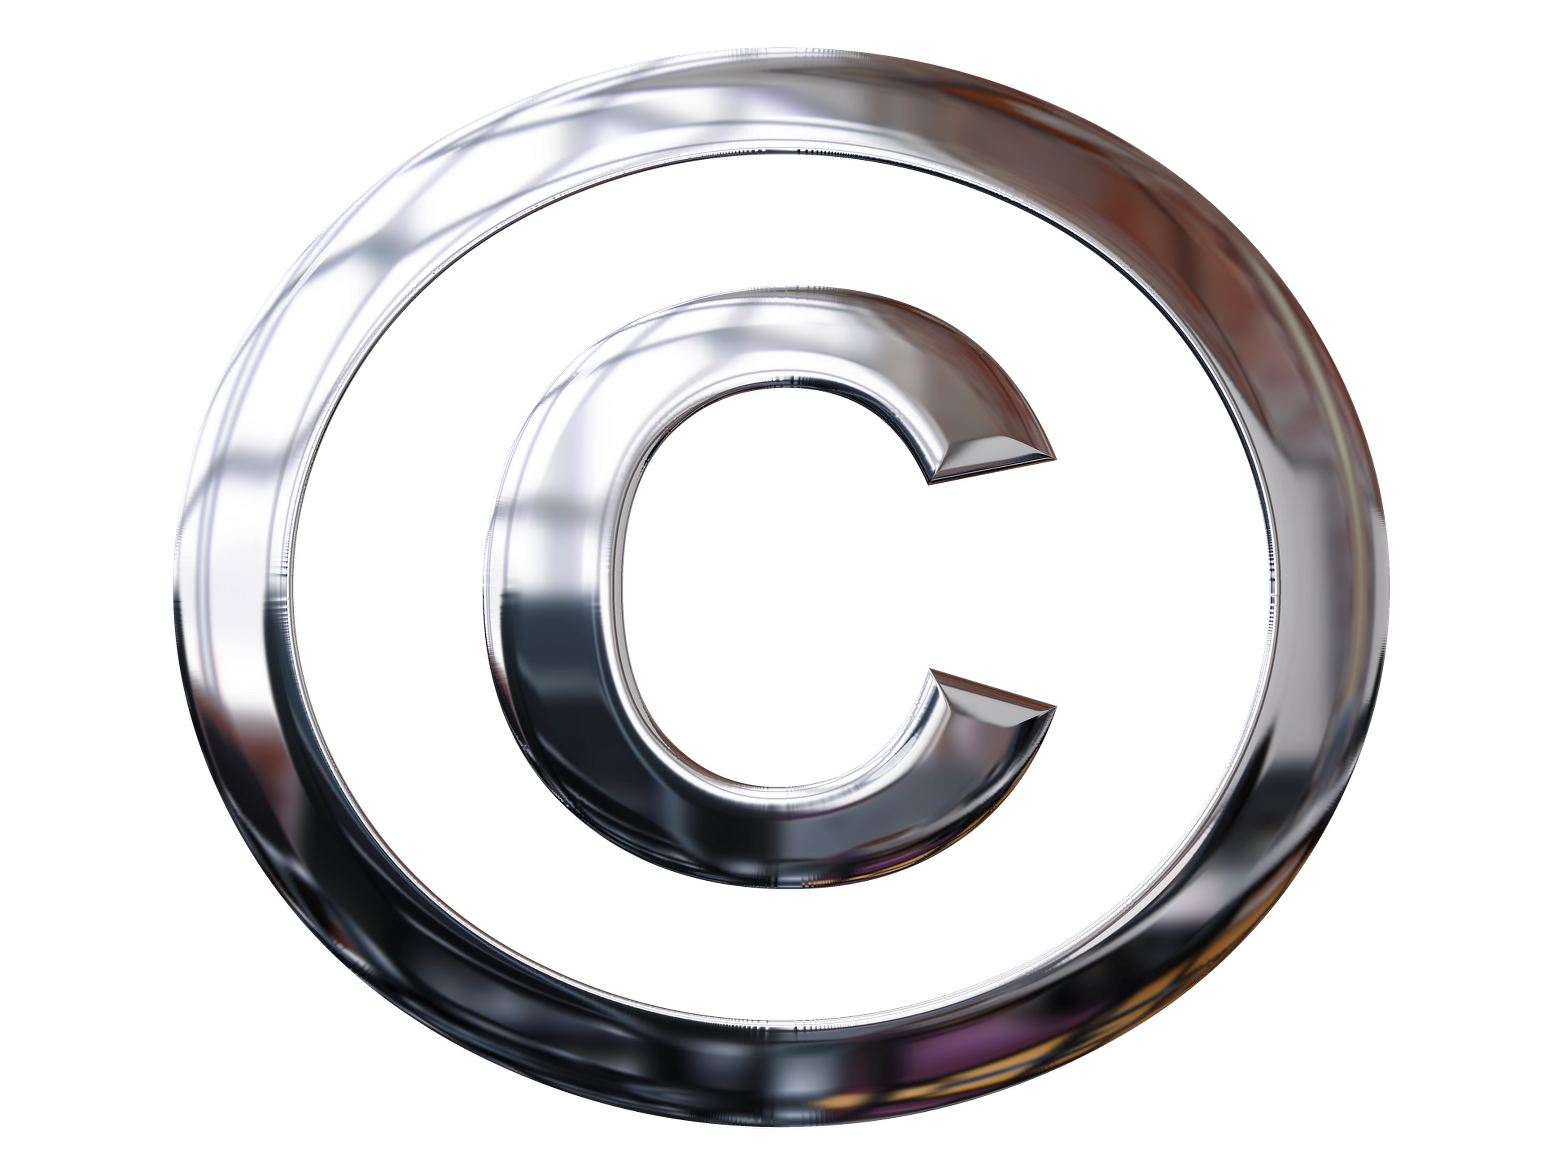 Copyright: Graphics, Photos, Logos and Newspaper Articles